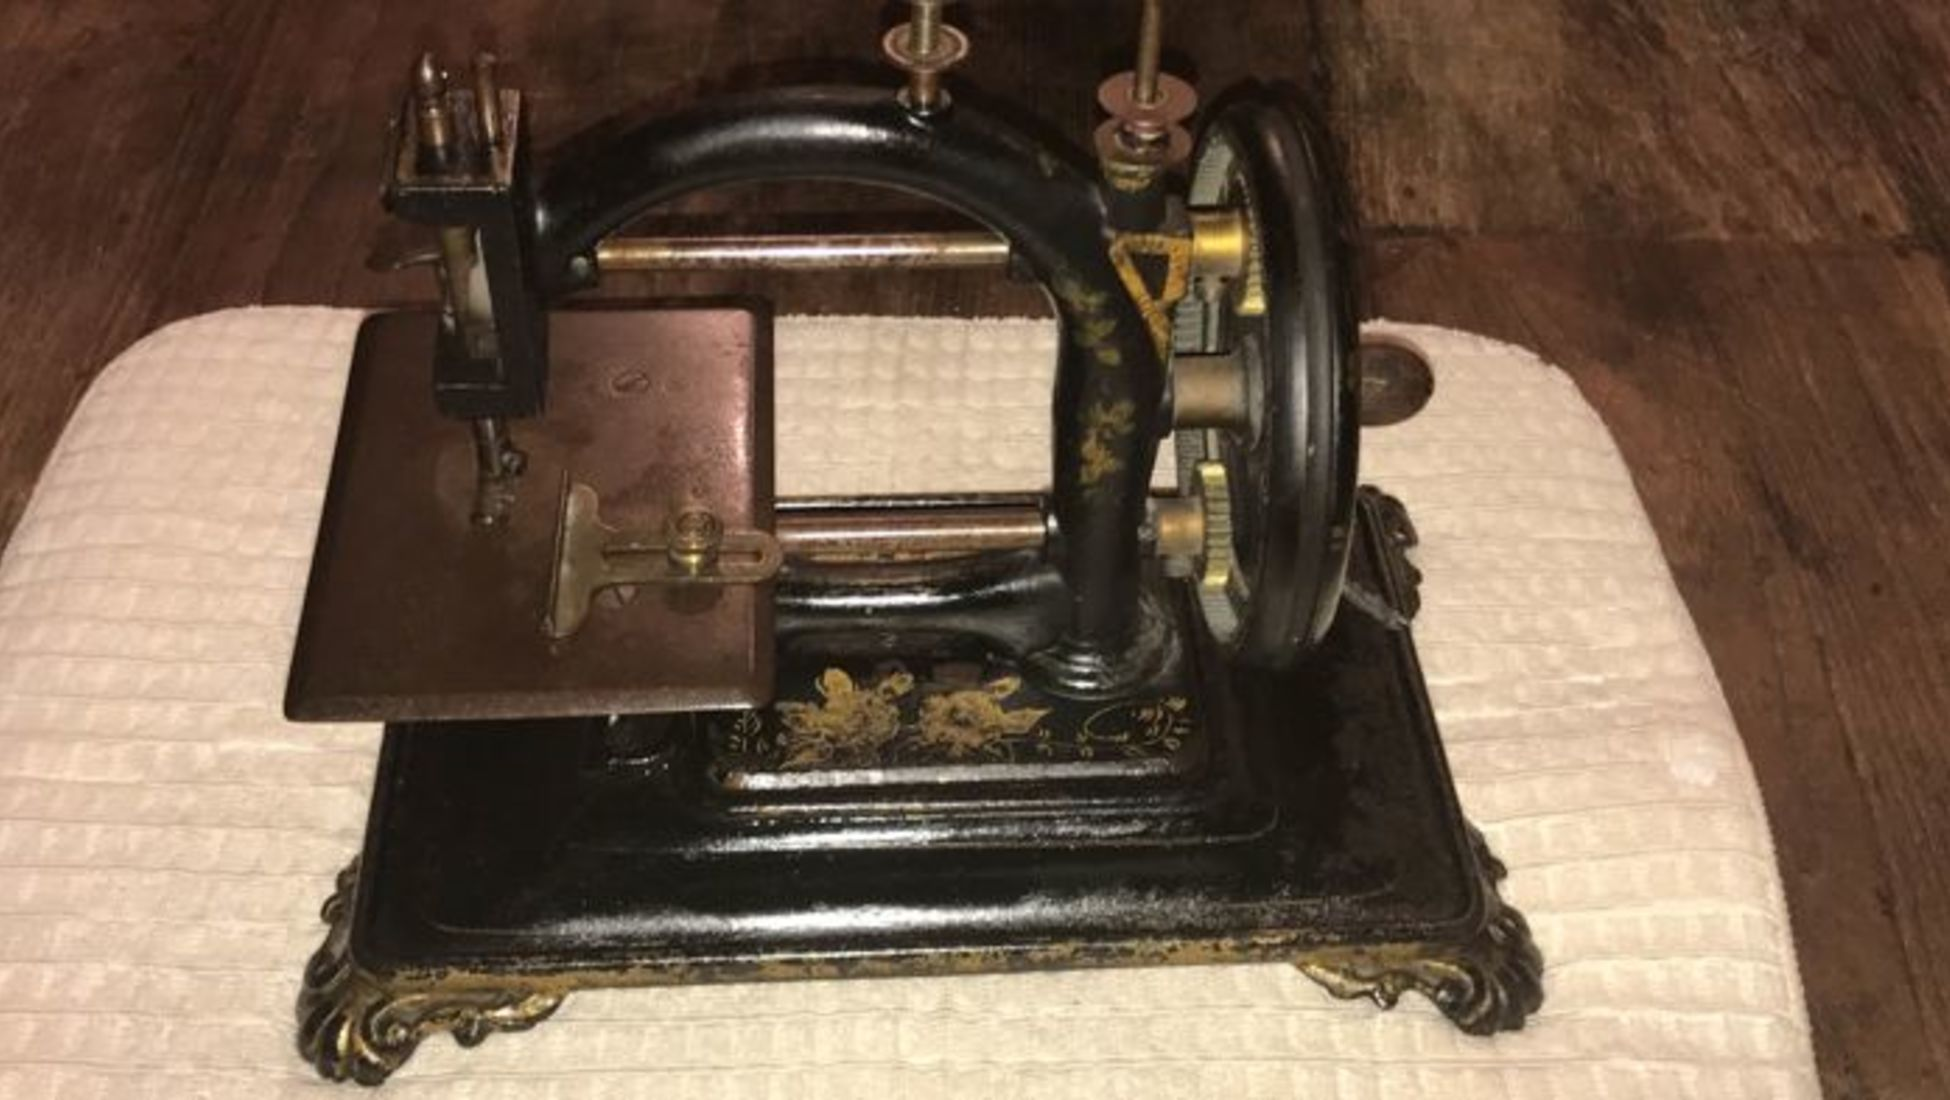 Dating old singer sewing machines